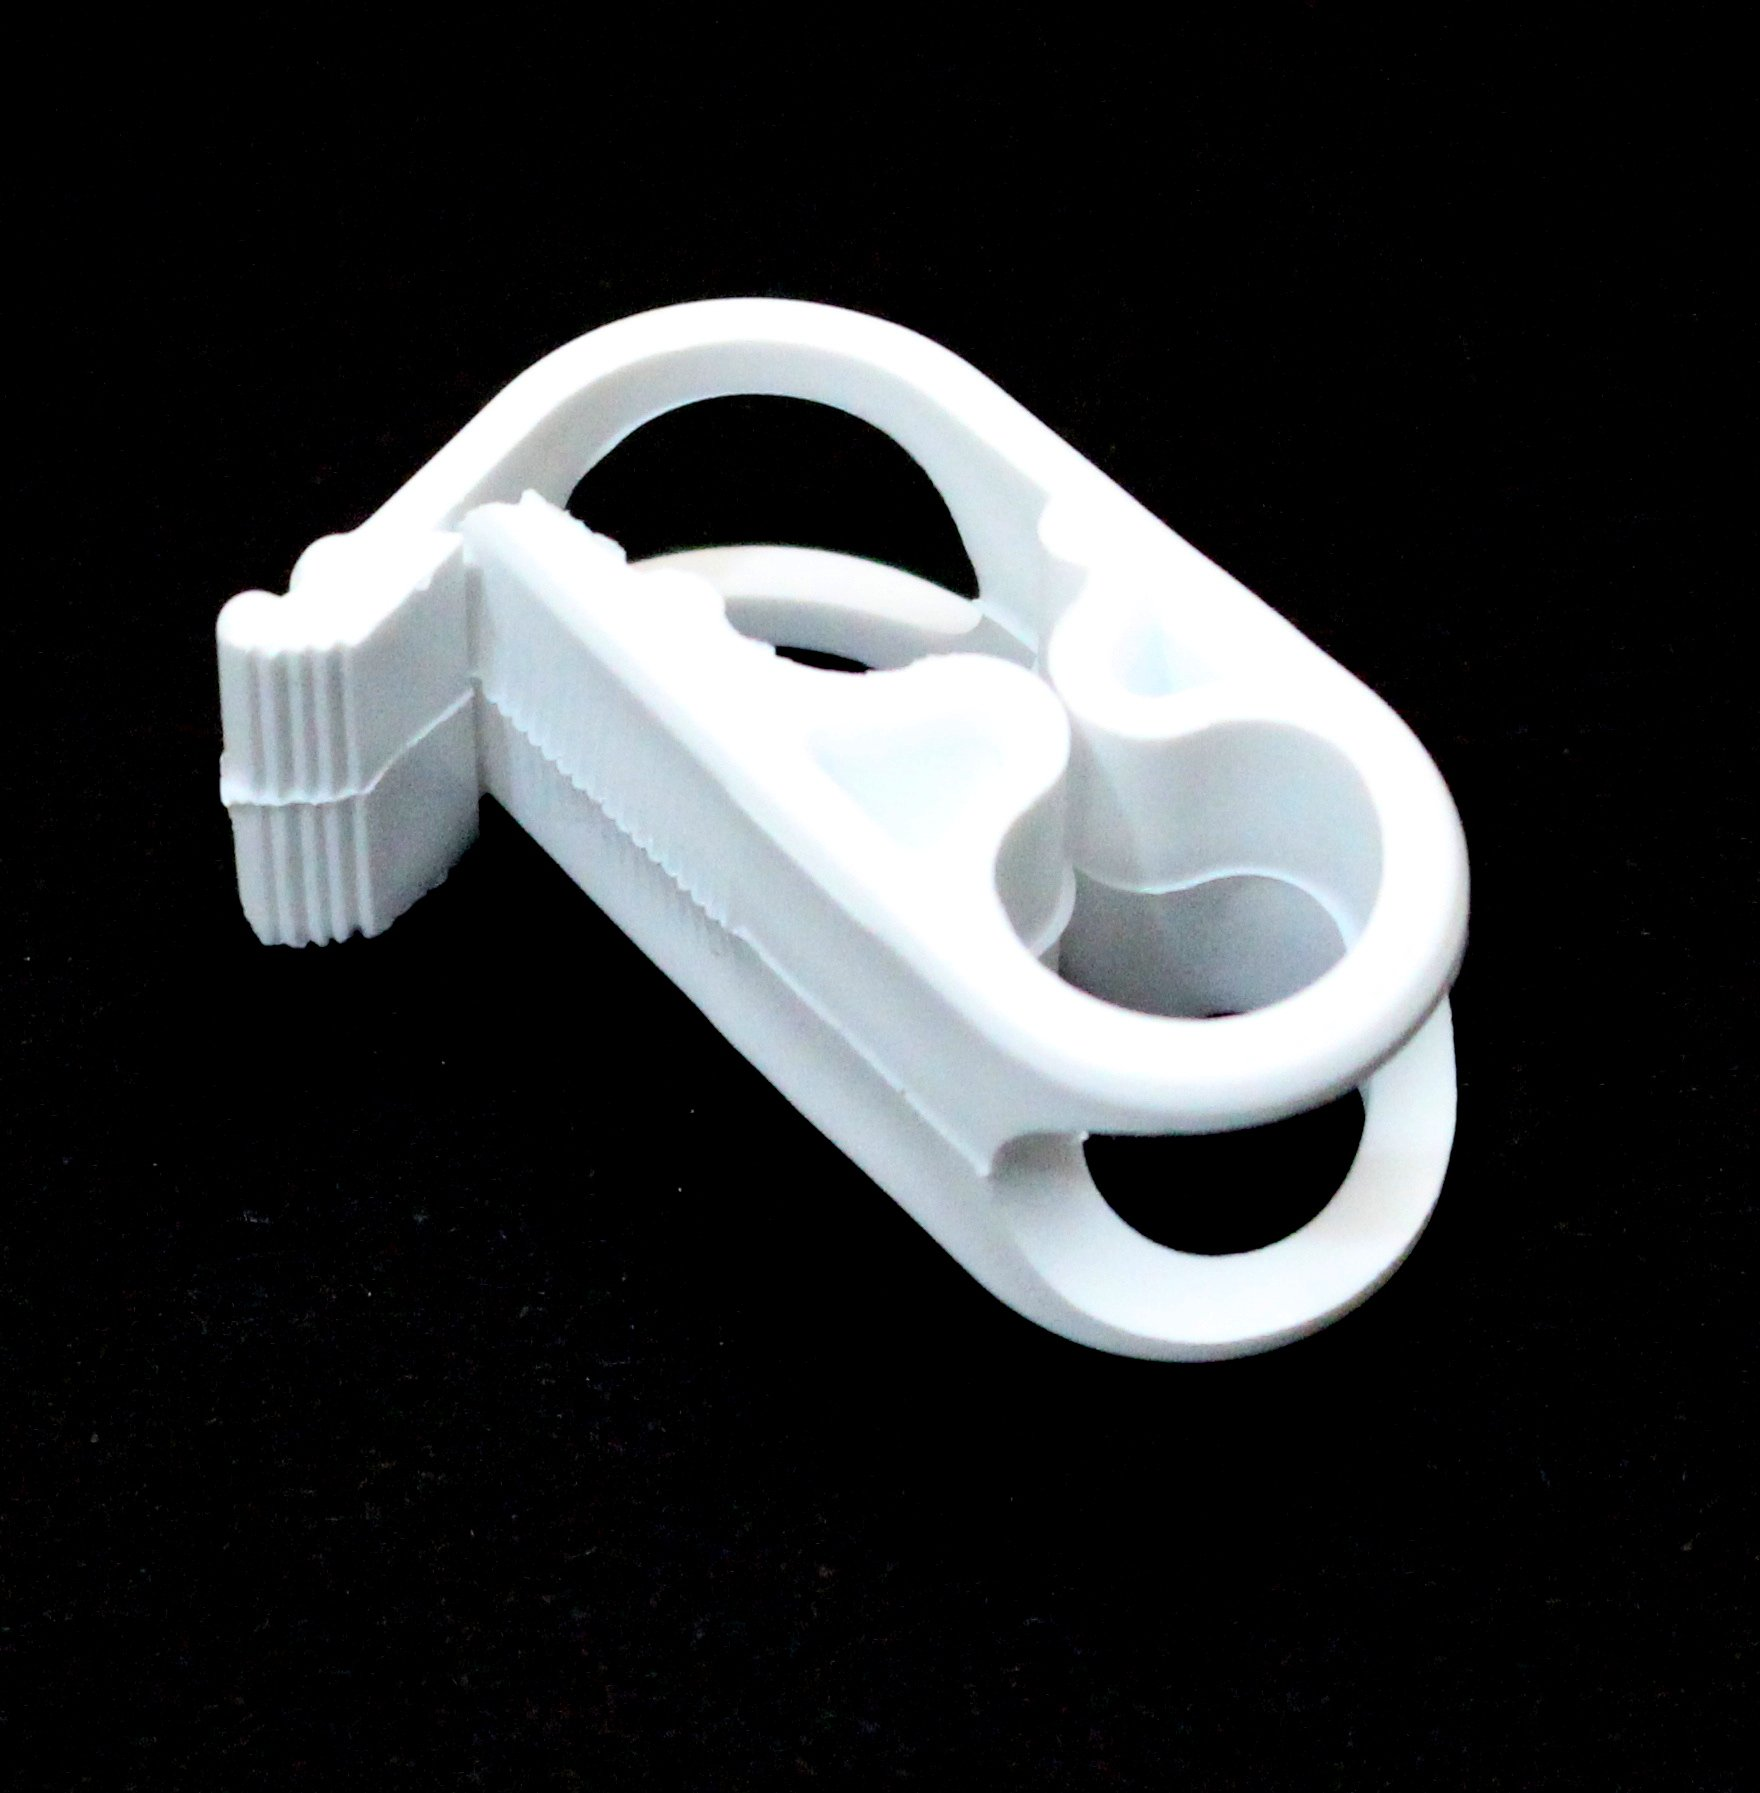 5 Pack Siphon Hose Shut Off Clamp Small Plastic Clamp Fits 7/16 in O.d.tubing Plastic Tubing Mid-range Clamp